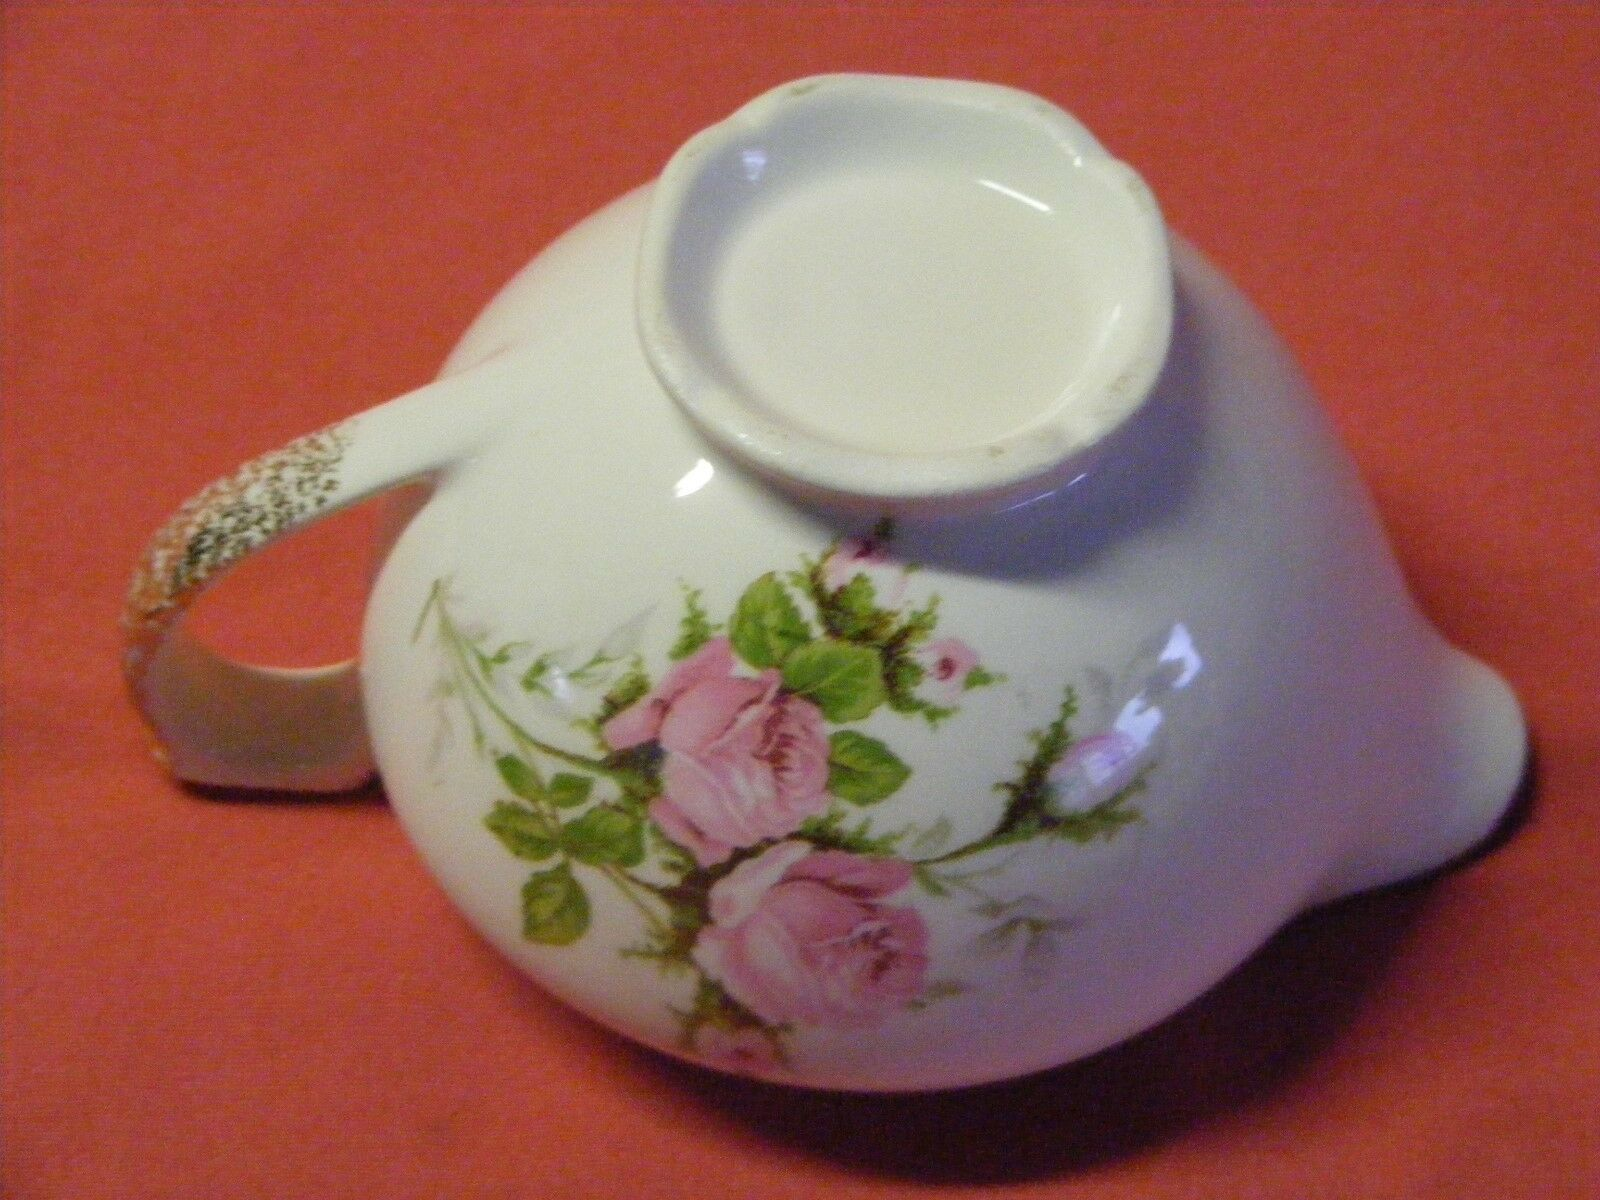 Canonsburg Moss Rose Cream Pitcher  22 K  Brushed Gold Trim